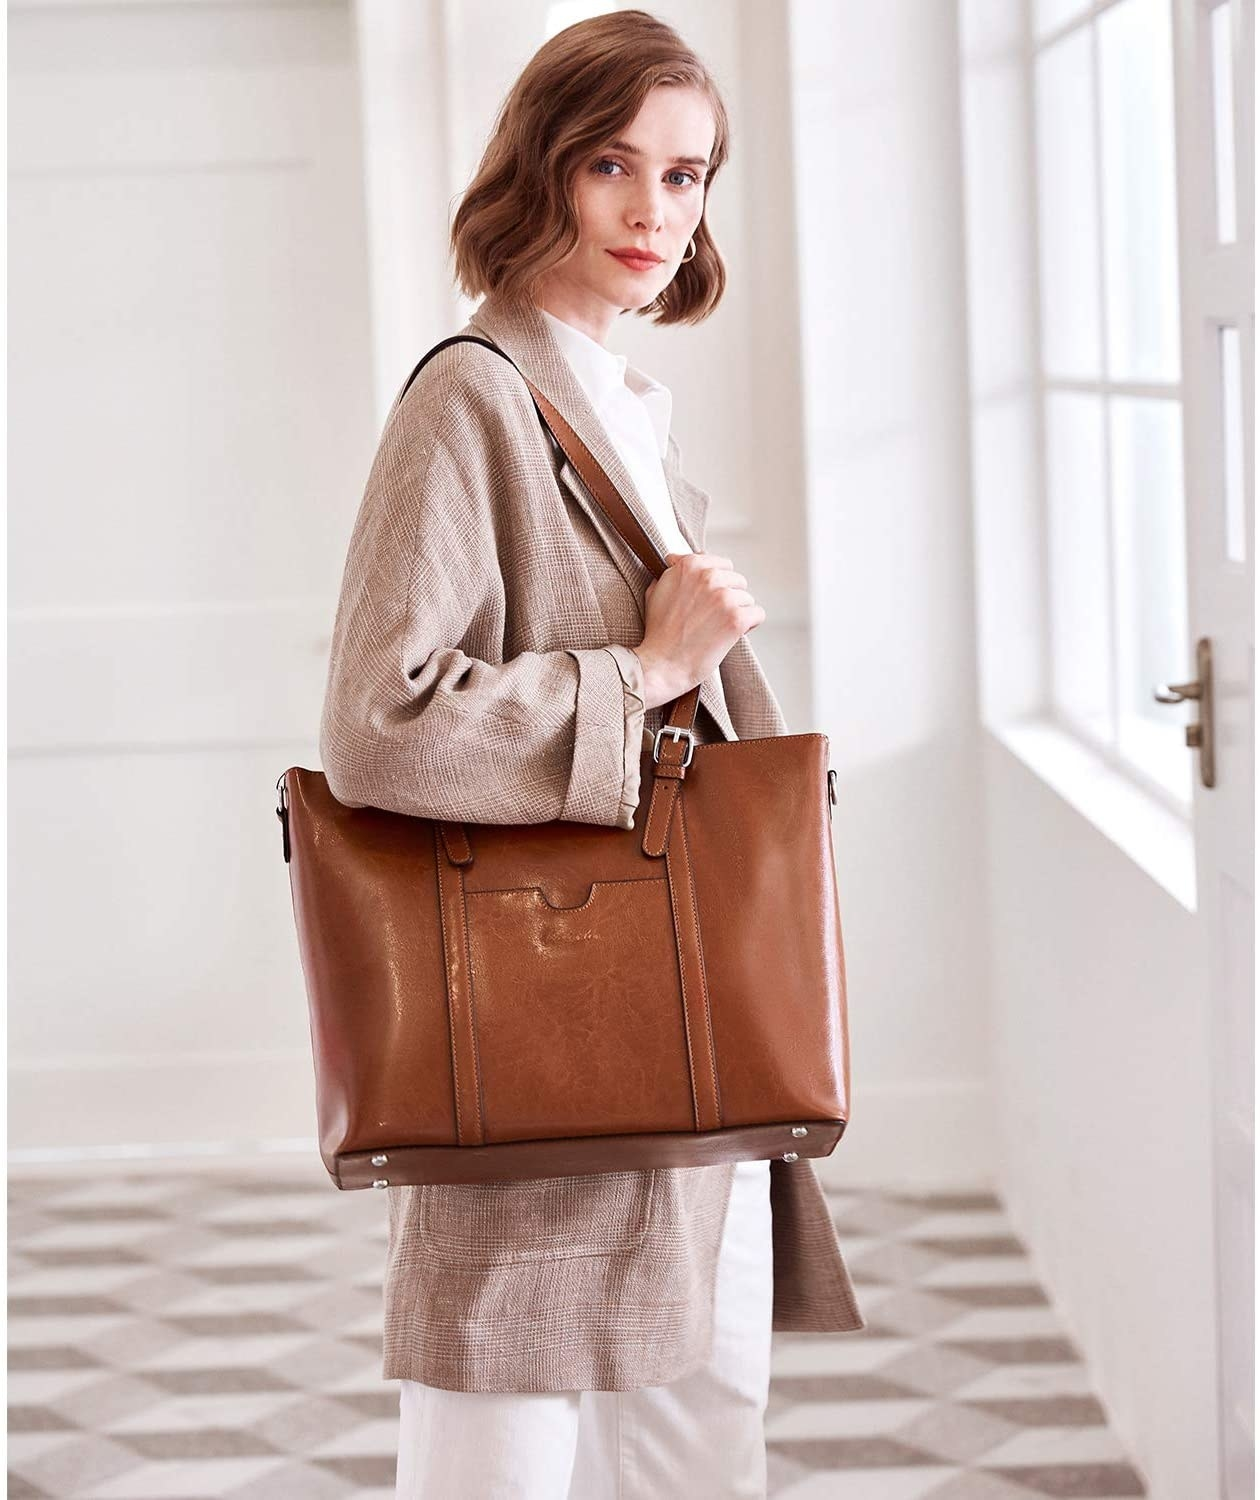 A model holding a tote bag across her shoulder